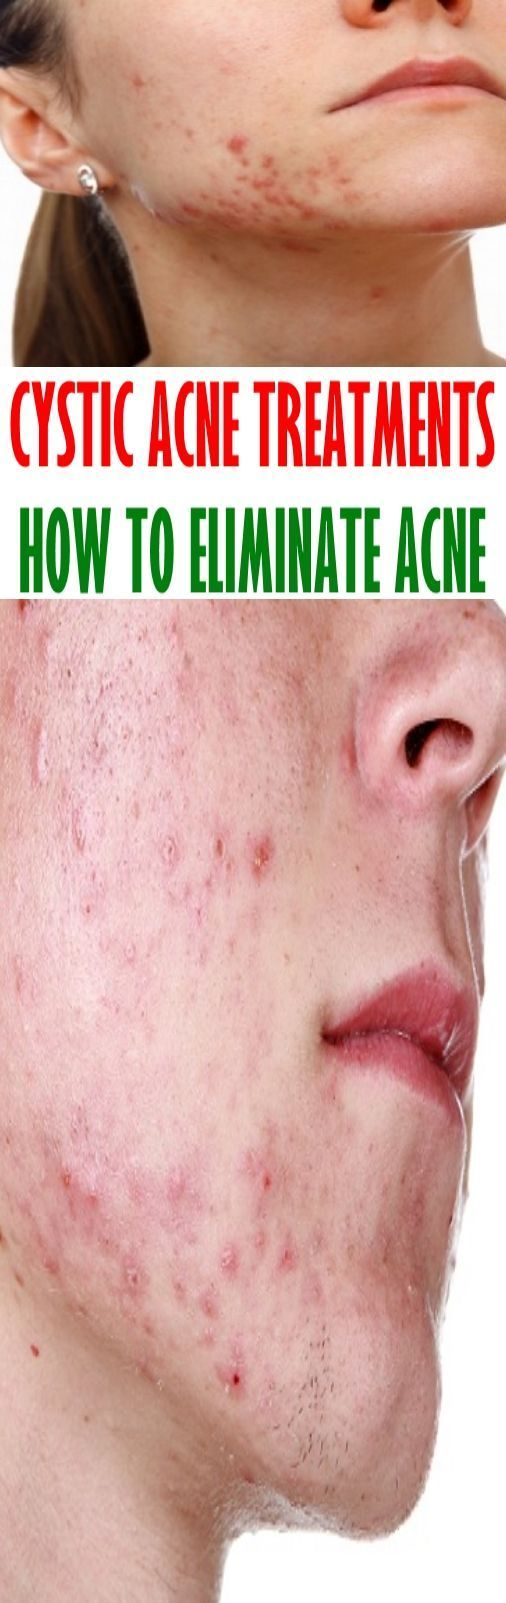 Cystic Acne Treatments – How To Eliminate Acne #acne #cysticacne #treatments #eliminateacne